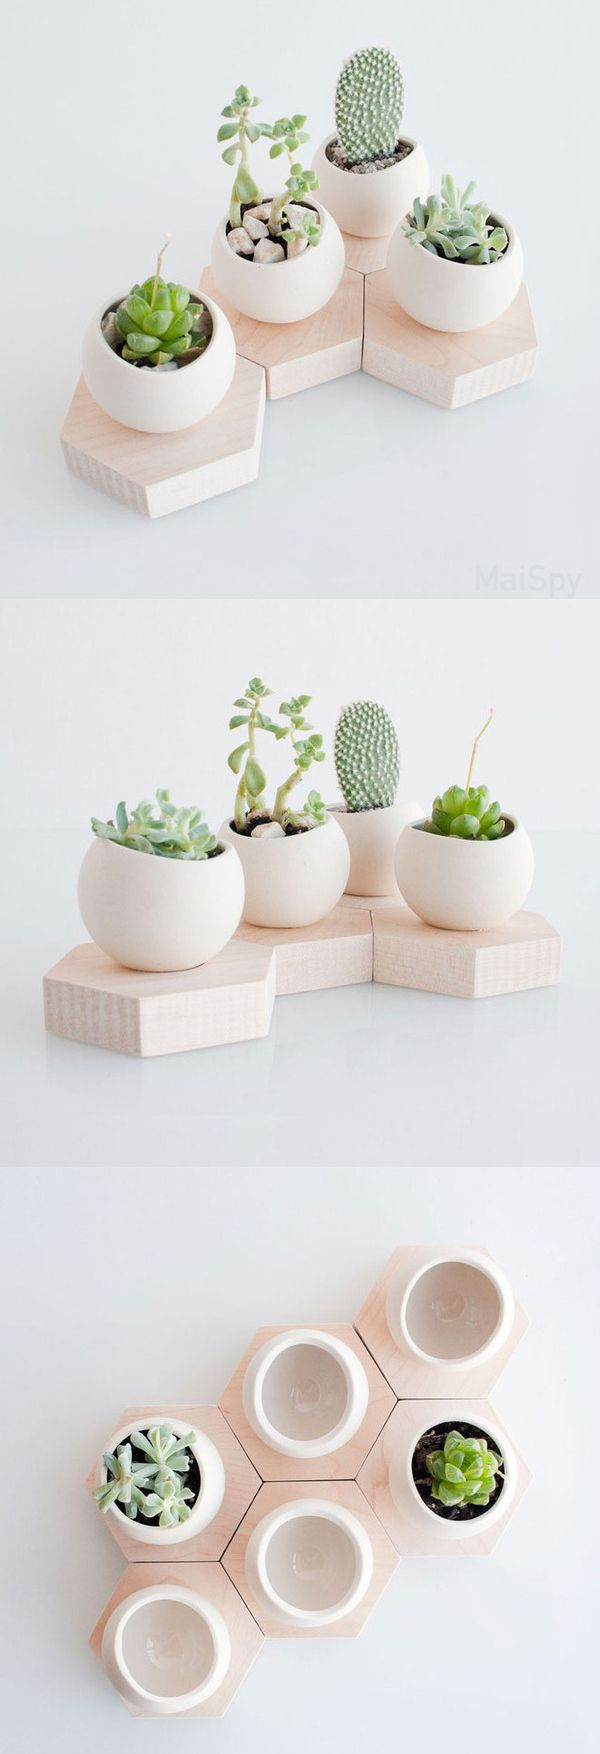 Hexagon Modular Planters Build Your Own Chain Of Green Life Indoors With This Unusual Little Planter With A Wood Plantas Decoracion Vegetal Disenos De Unas